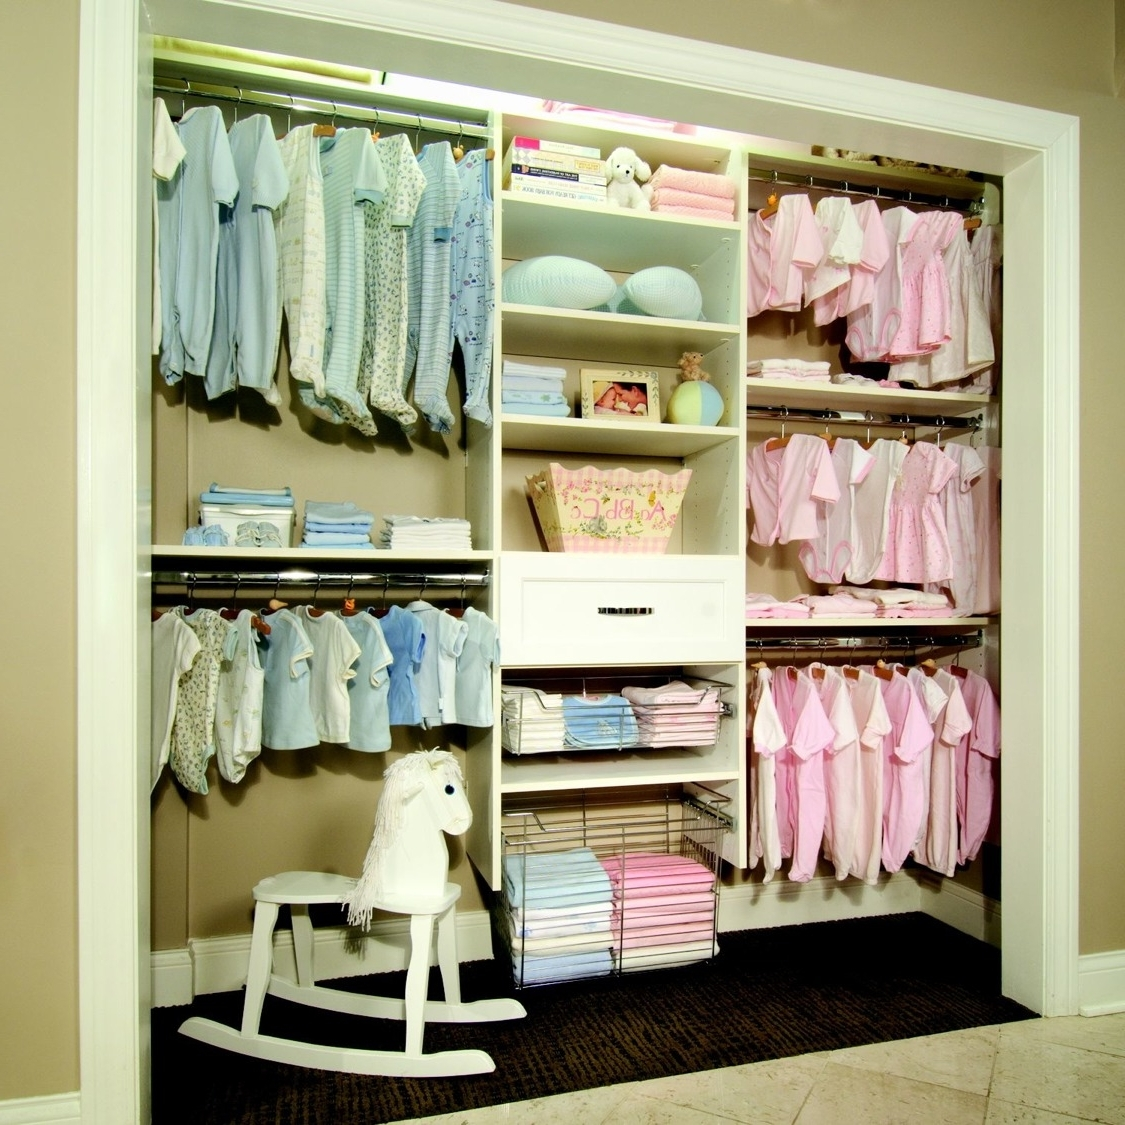 Most Organized Baby Closet I've Ever Seen (View 7 of 15)